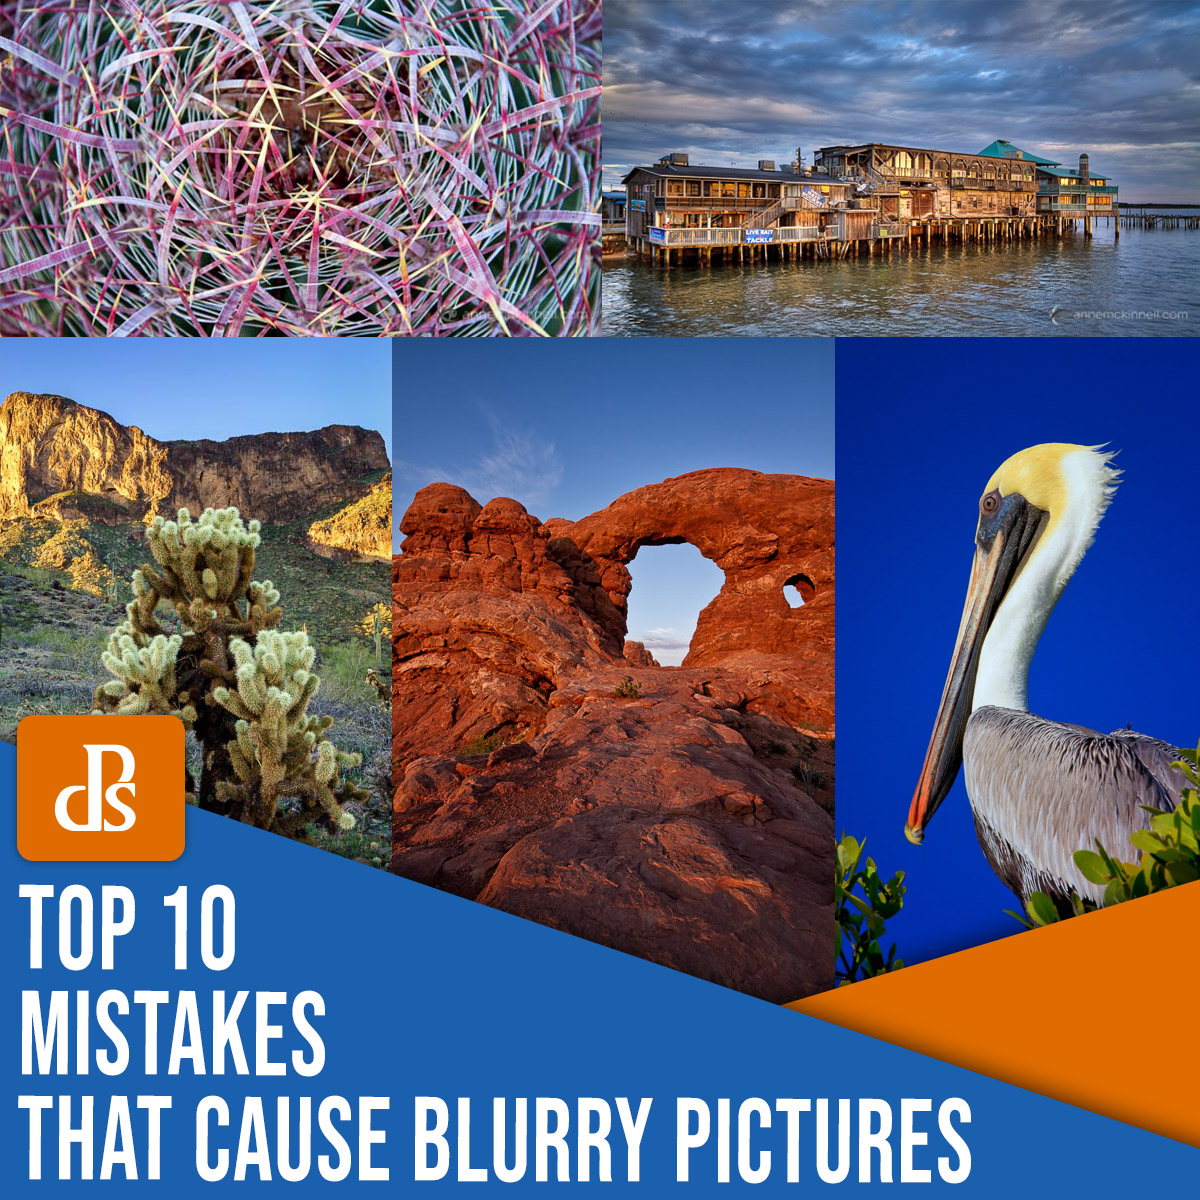 Top 10 Mistakes That Cause Blurry Pictures (And How to Fix Them)